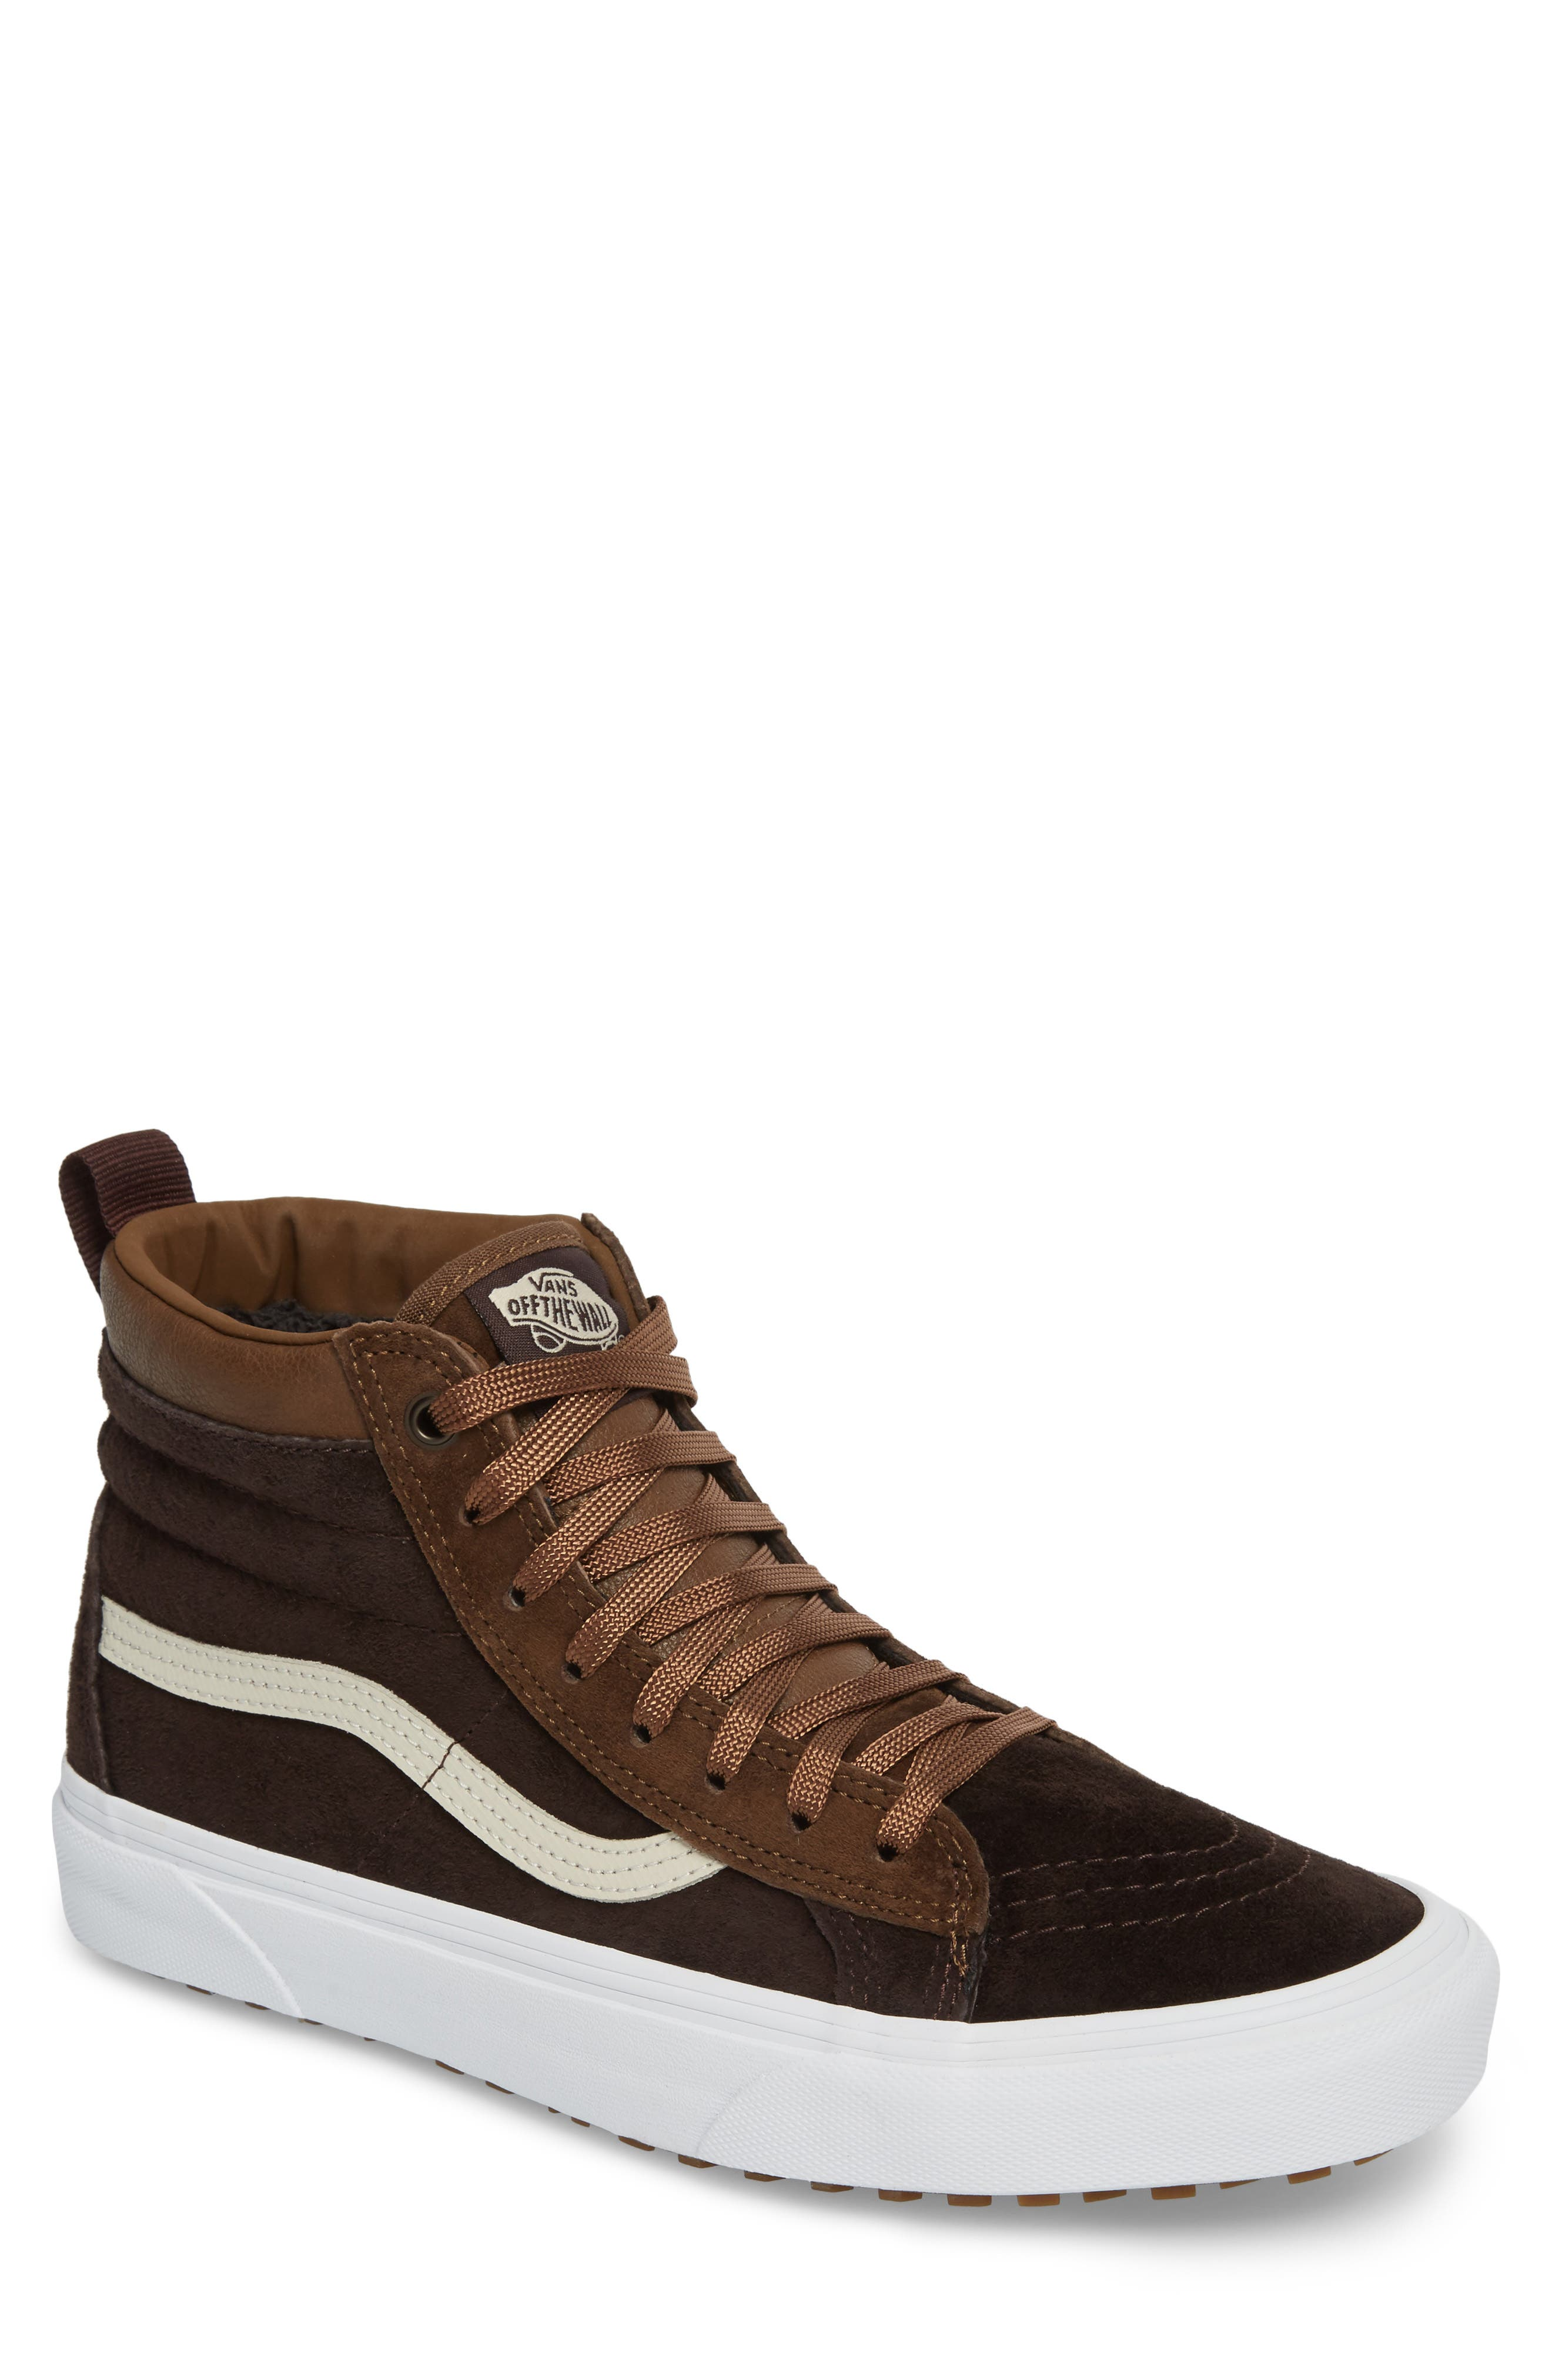 Vans SK8-Hi MTE Insulated Water Resistant Genuine Sneaker (Men)